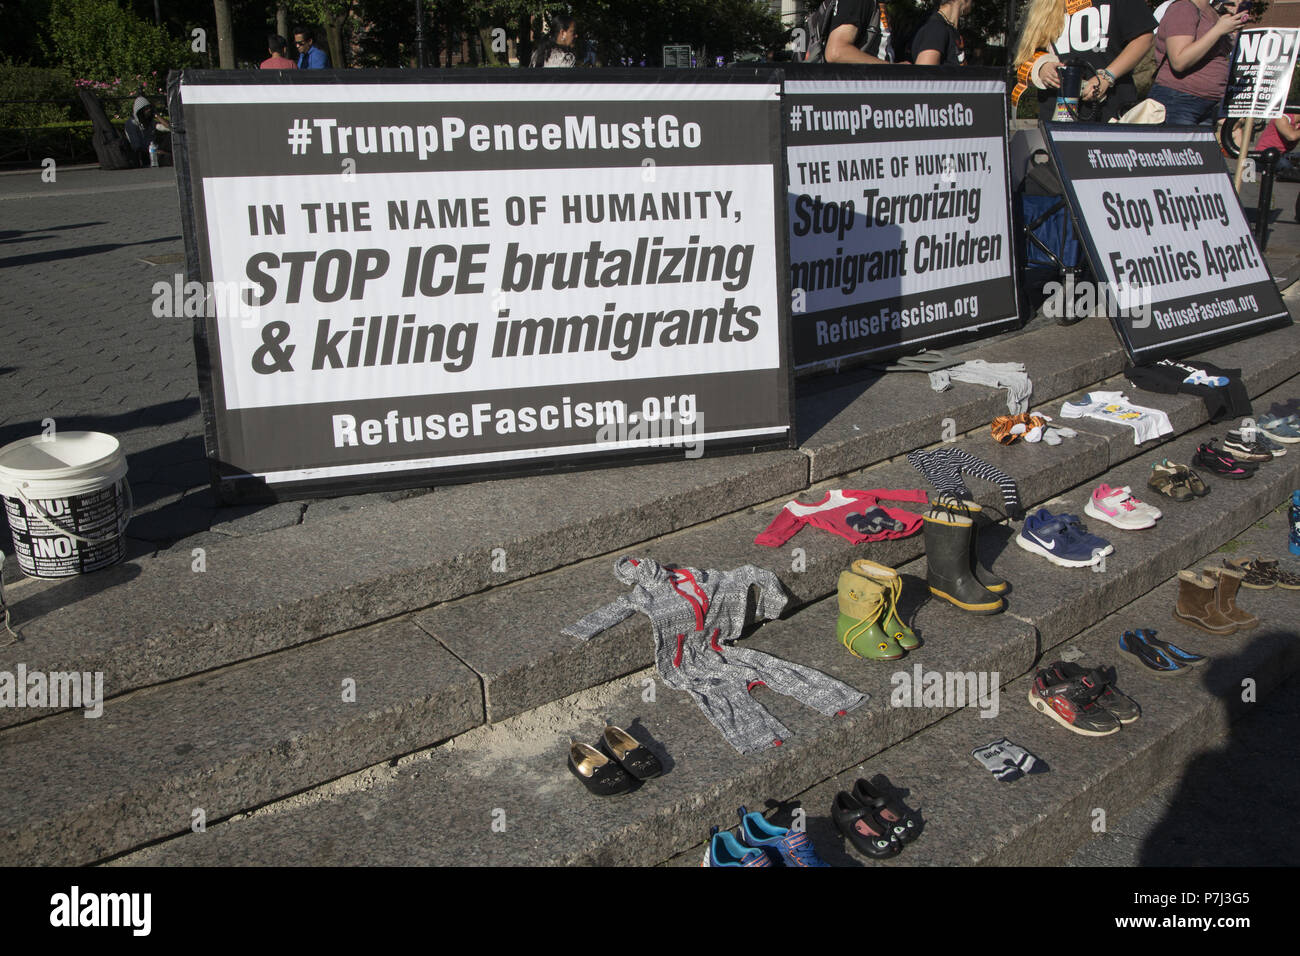 New Yorkers came out to protest the government immigrration policy of separating children from parents at the US Mexican border as cruel and immoral and must be stopped immediately. Protests around the country pressured the Trump administration to initially end this un American action by the Department of Immigration in the United States. - Stock Image